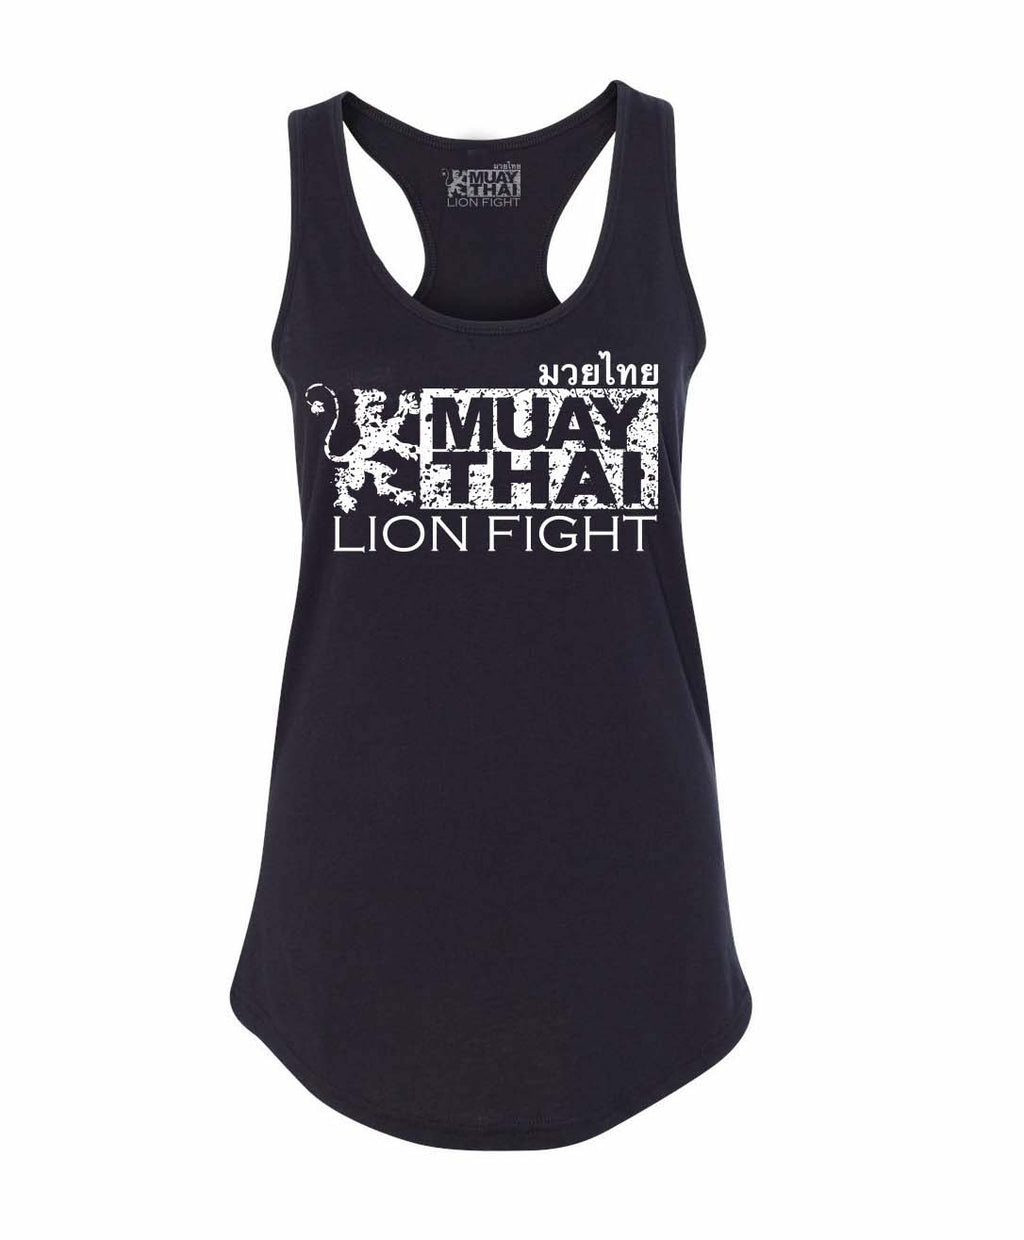 Women's Tank Top (SOLD OUT)